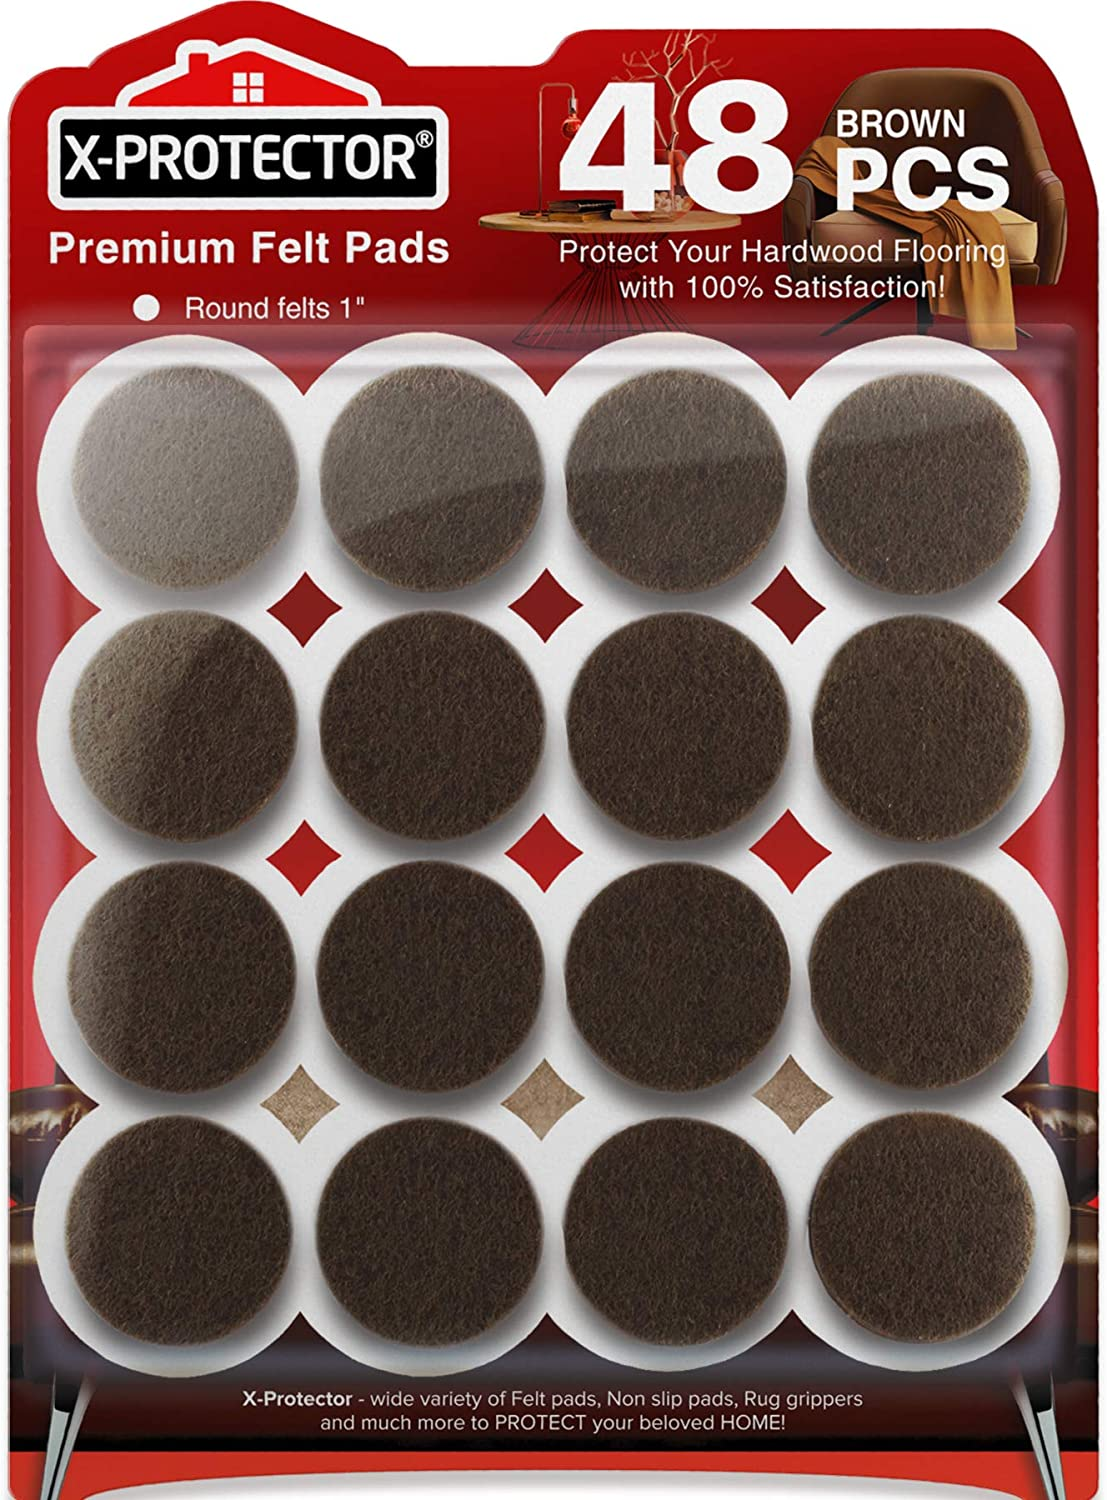 Felt Furniture Pads X Protector 48 Premium Felt Pads Floor Protector Grey Chair Felts Pads For Furniture Feet Wood Floors Best Furniture Pads For Hardwood Floors Protect Your Wood Floors Brown